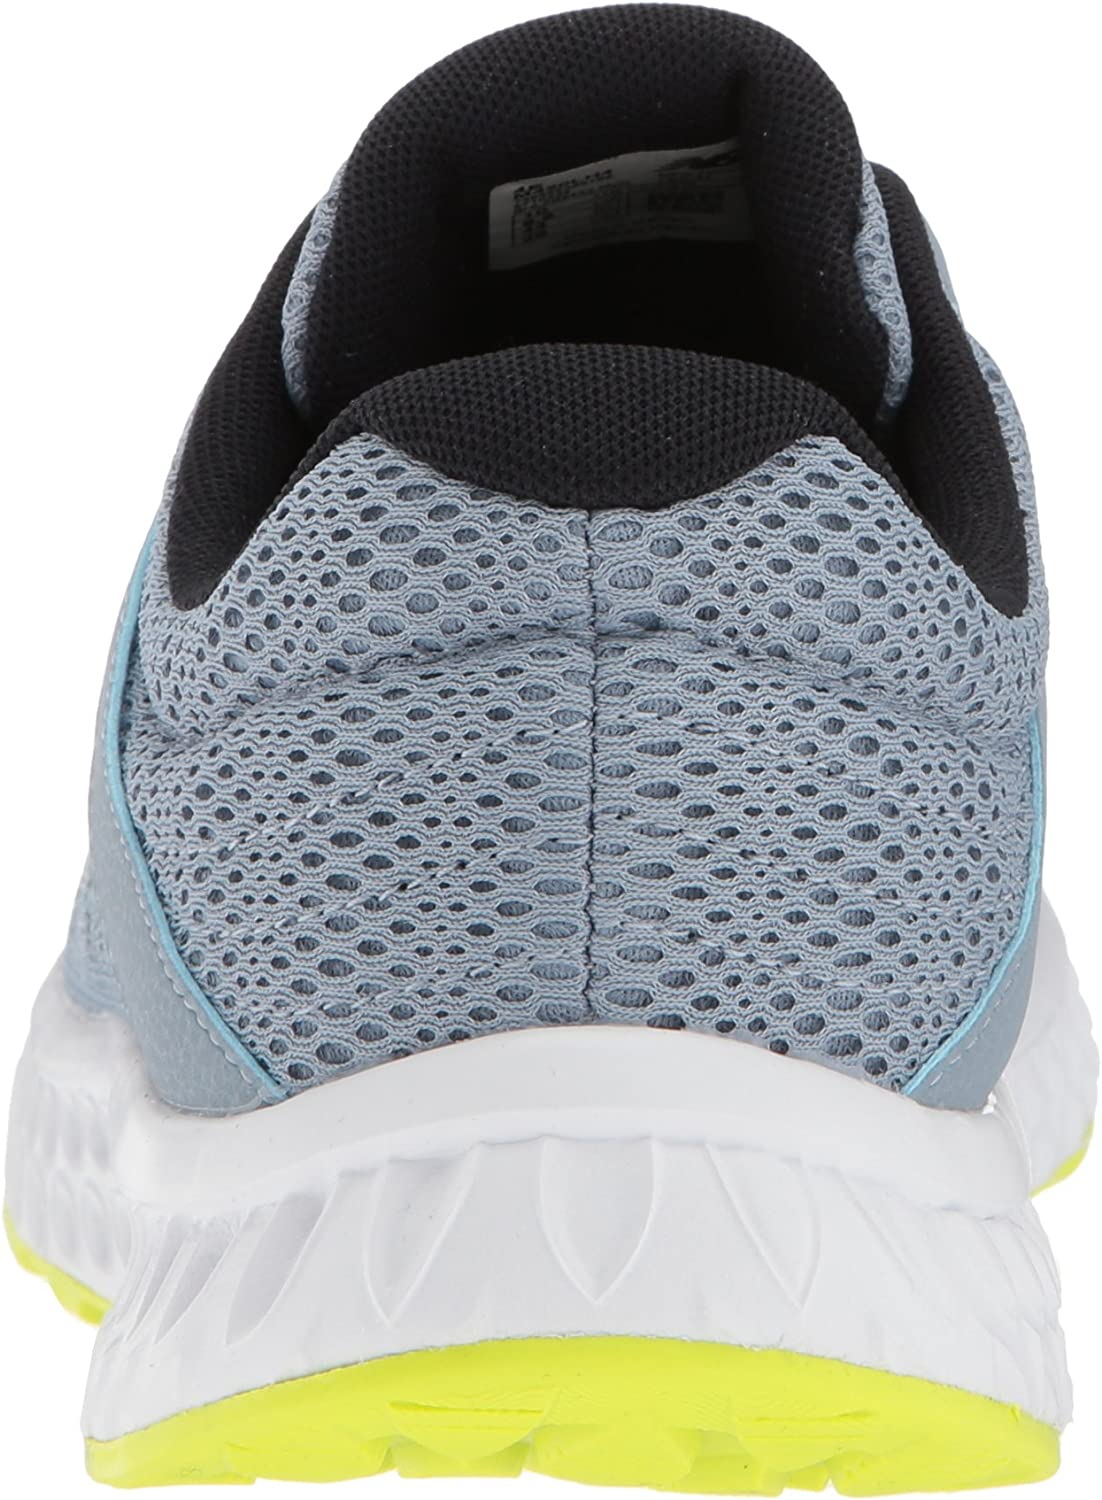 New Balance Mens M420v4 Running Shoes Sports & Outdoors Footwear